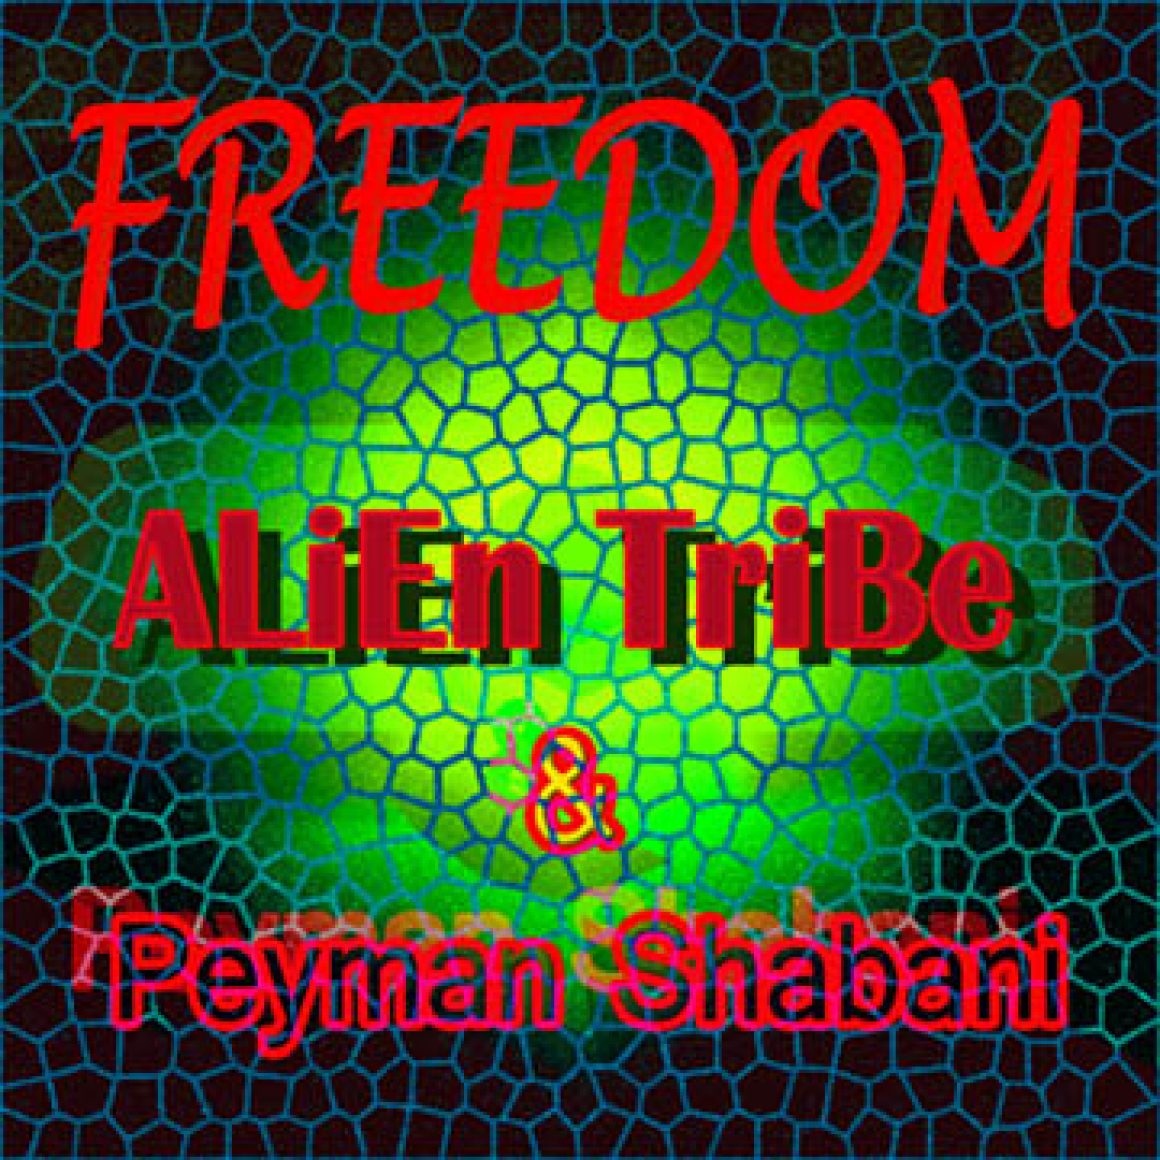 Freedom a song by Alien Tribe and Peyman Shbani